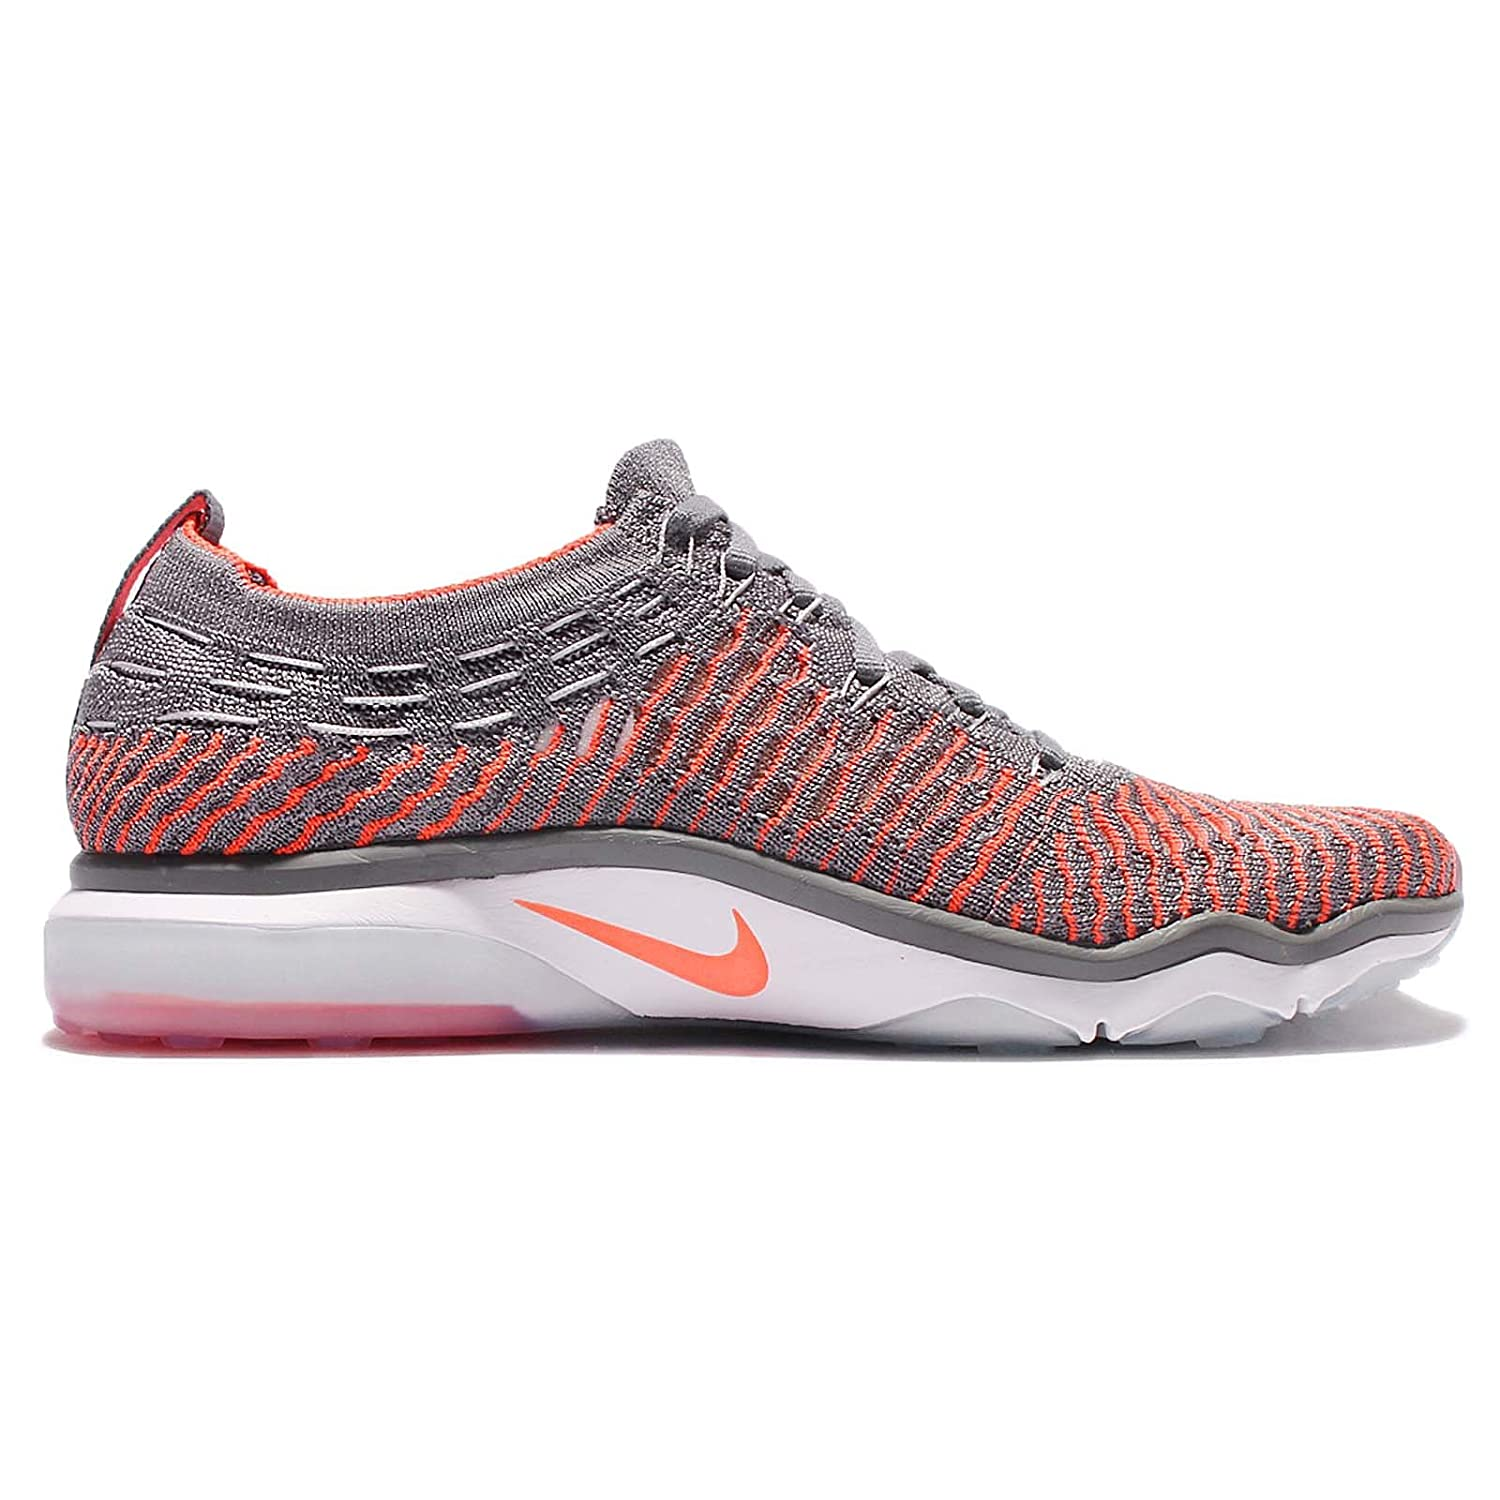 NIKE Women's Air Zoom Fearless Flyknit Running Shoes B06W9LJG49 9.5 B(M) US|Cool Grey/Black-total Crimson